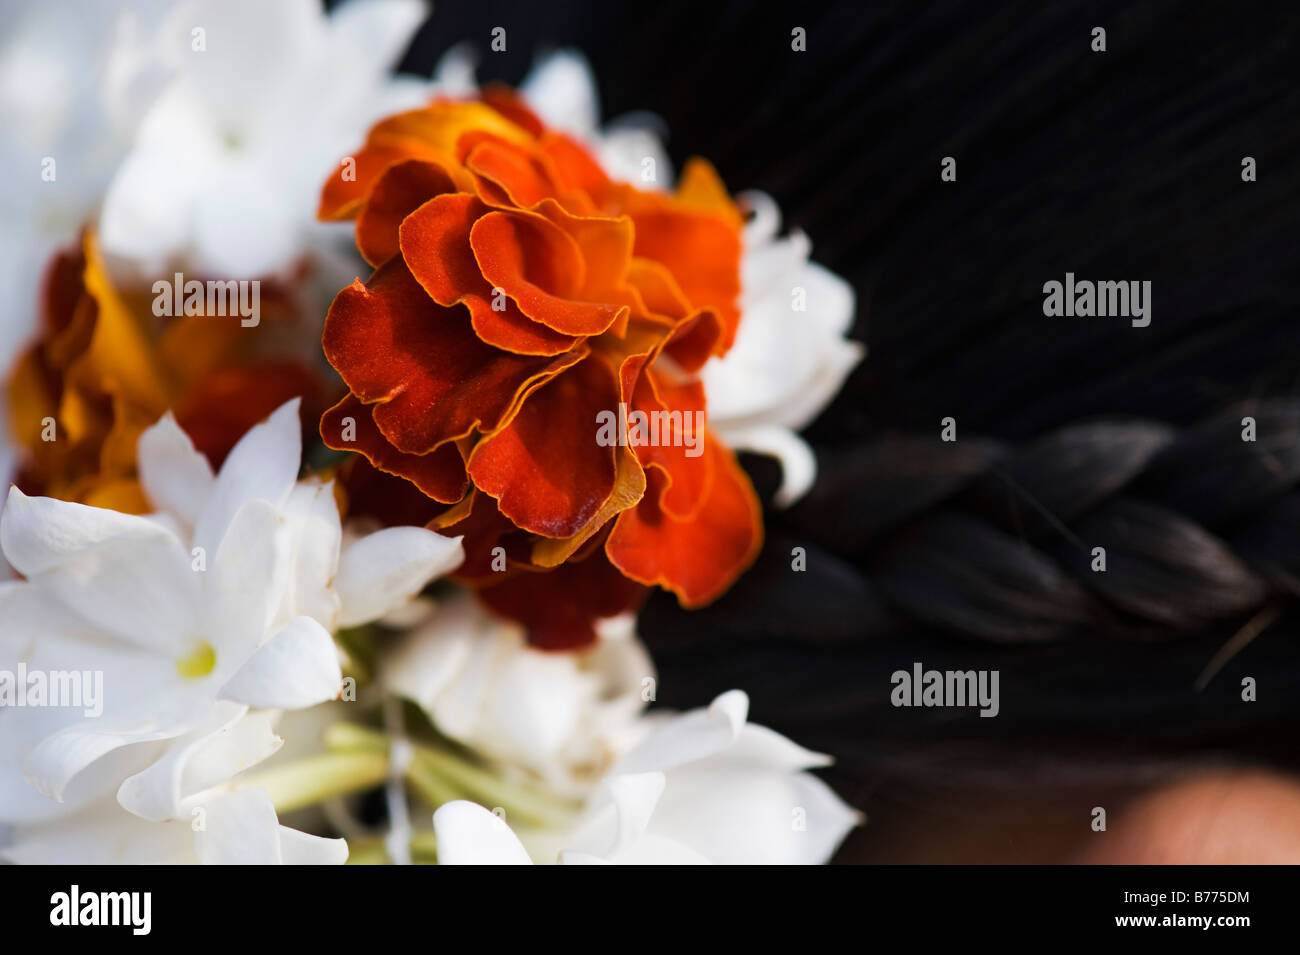 India jasmine hair stock photos india jasmine hair stock images marigold and jasmine flowers in an indian girls hair close up andhra pradesh india izmirmasajfo